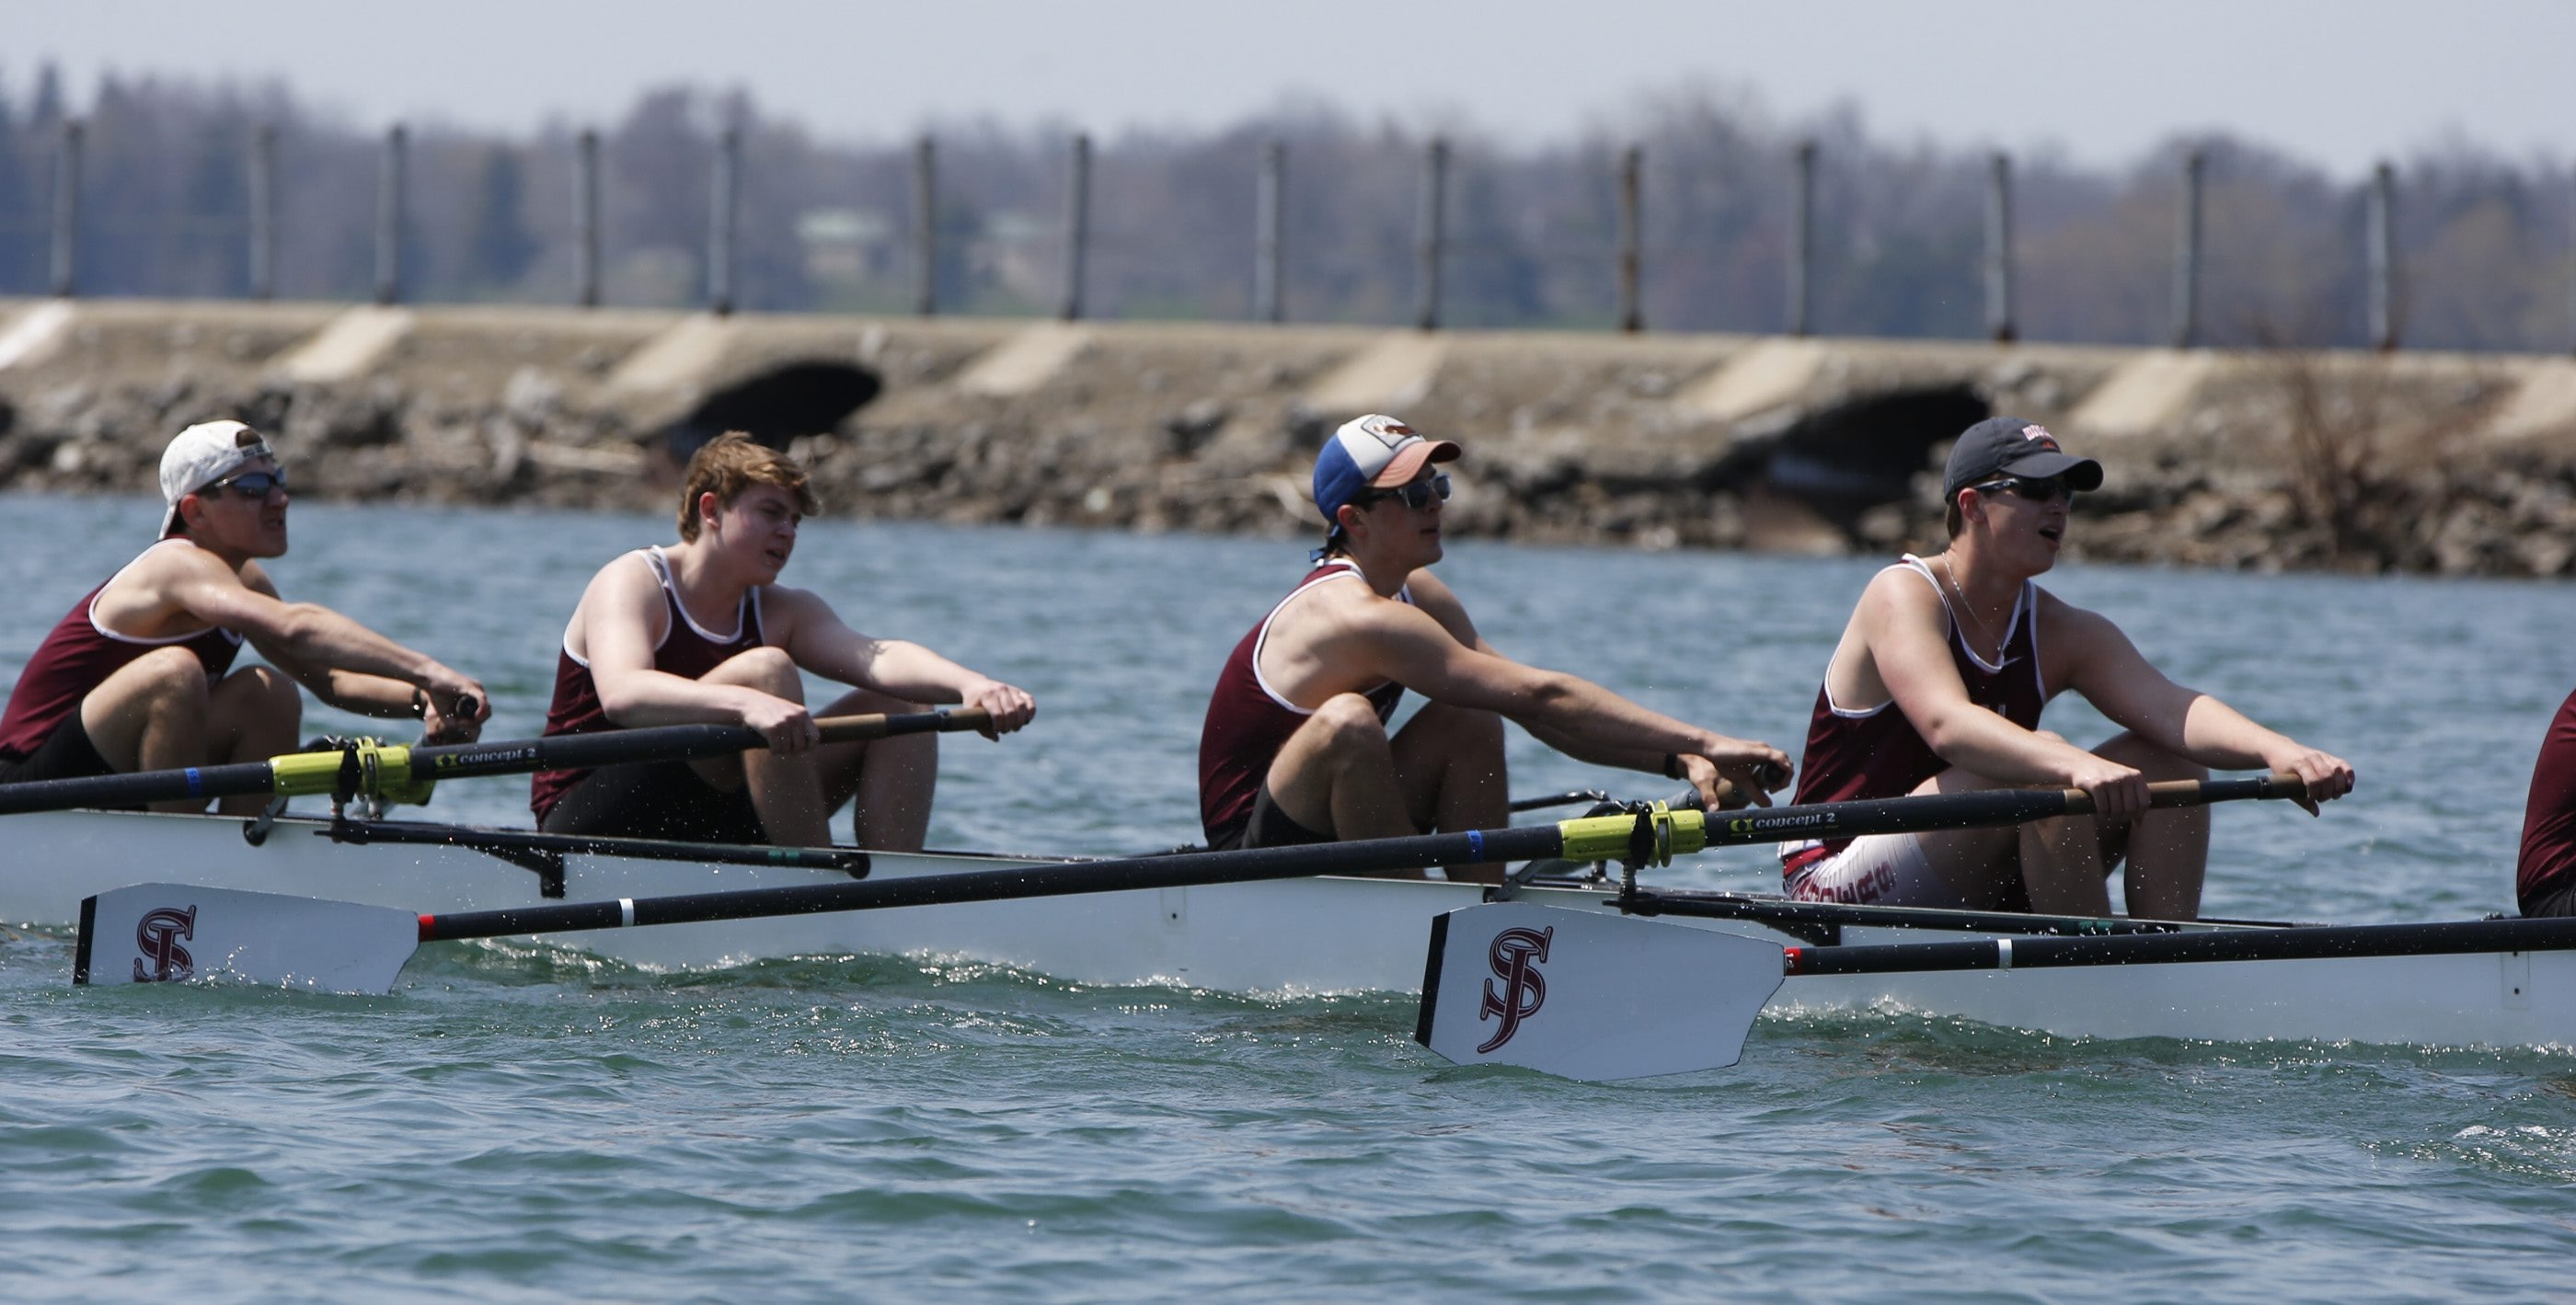 A portion of St. Joe's eight-man crew looks for extra speed during trials at the John Bennett Regatta.